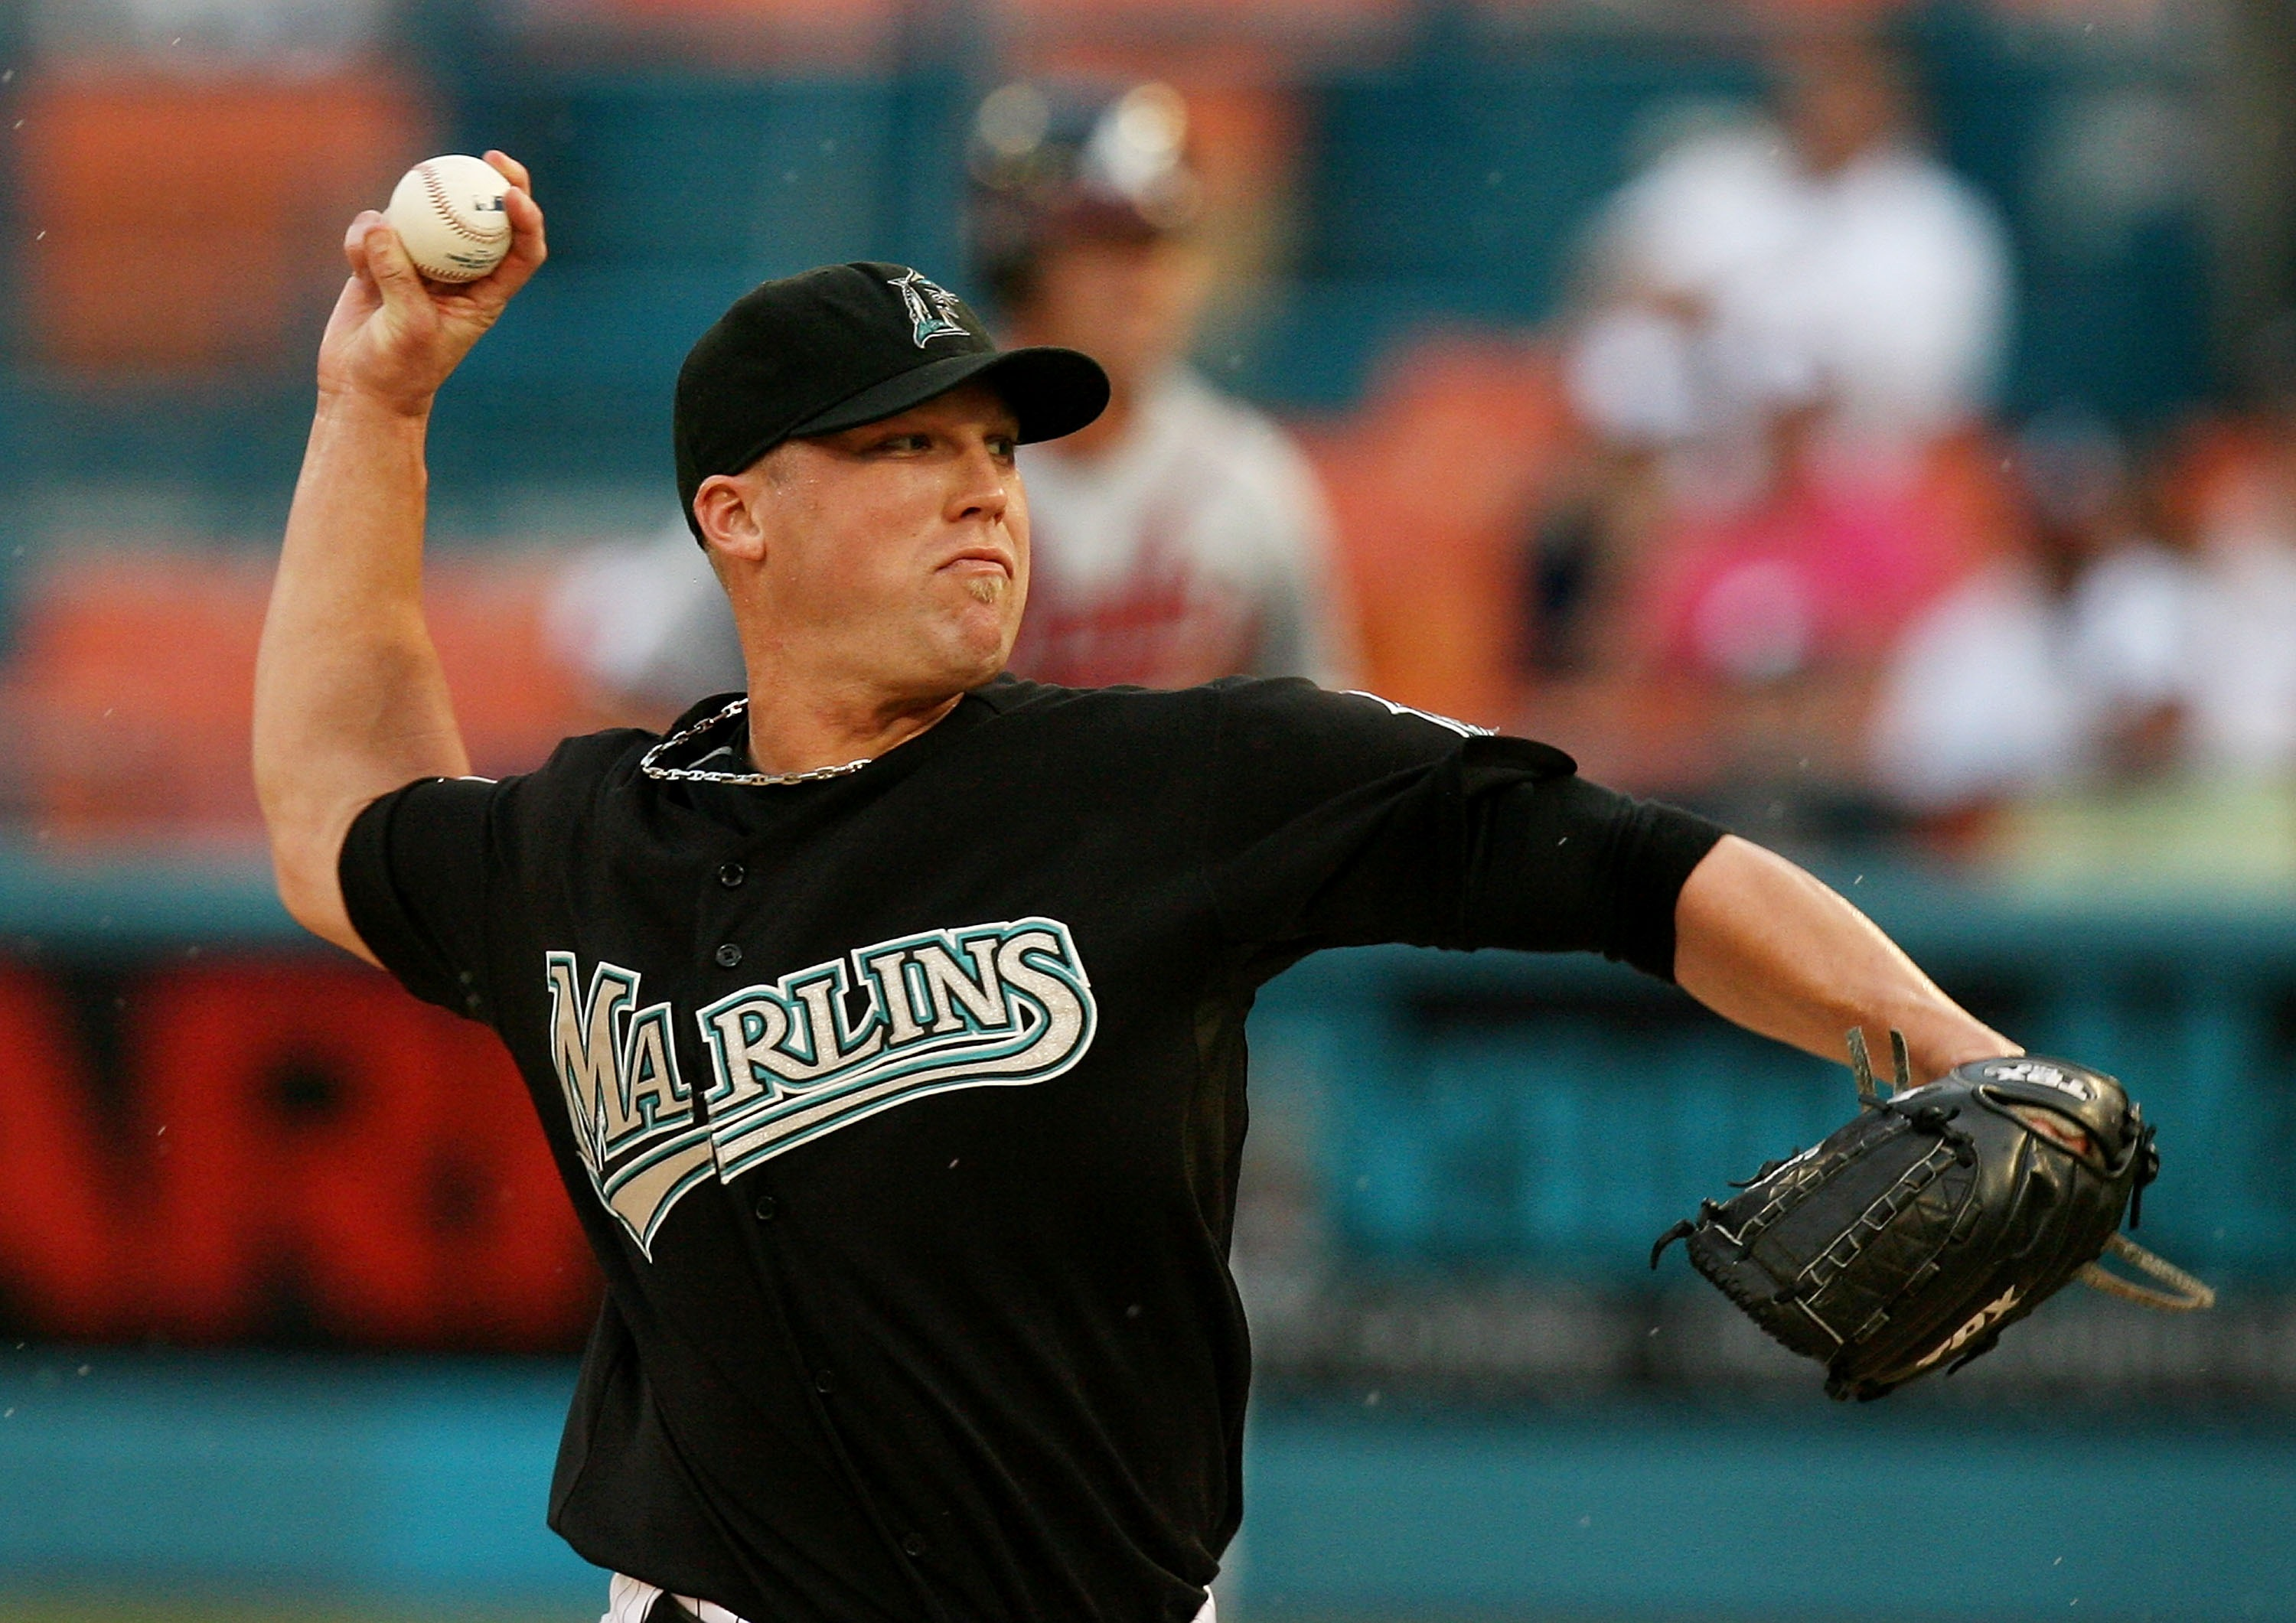 MIAMI - JULY 1:  Pitcher Matt Lindstrom #22 of the Florida Marlins pitches against the Atlanta Braves at Dolphin Stadium July 1, 2007 in Miami, Florida. The Marlins defeated the Braves 6-5 in ten innings.  (Photo by Doug Benc/Getty Images)